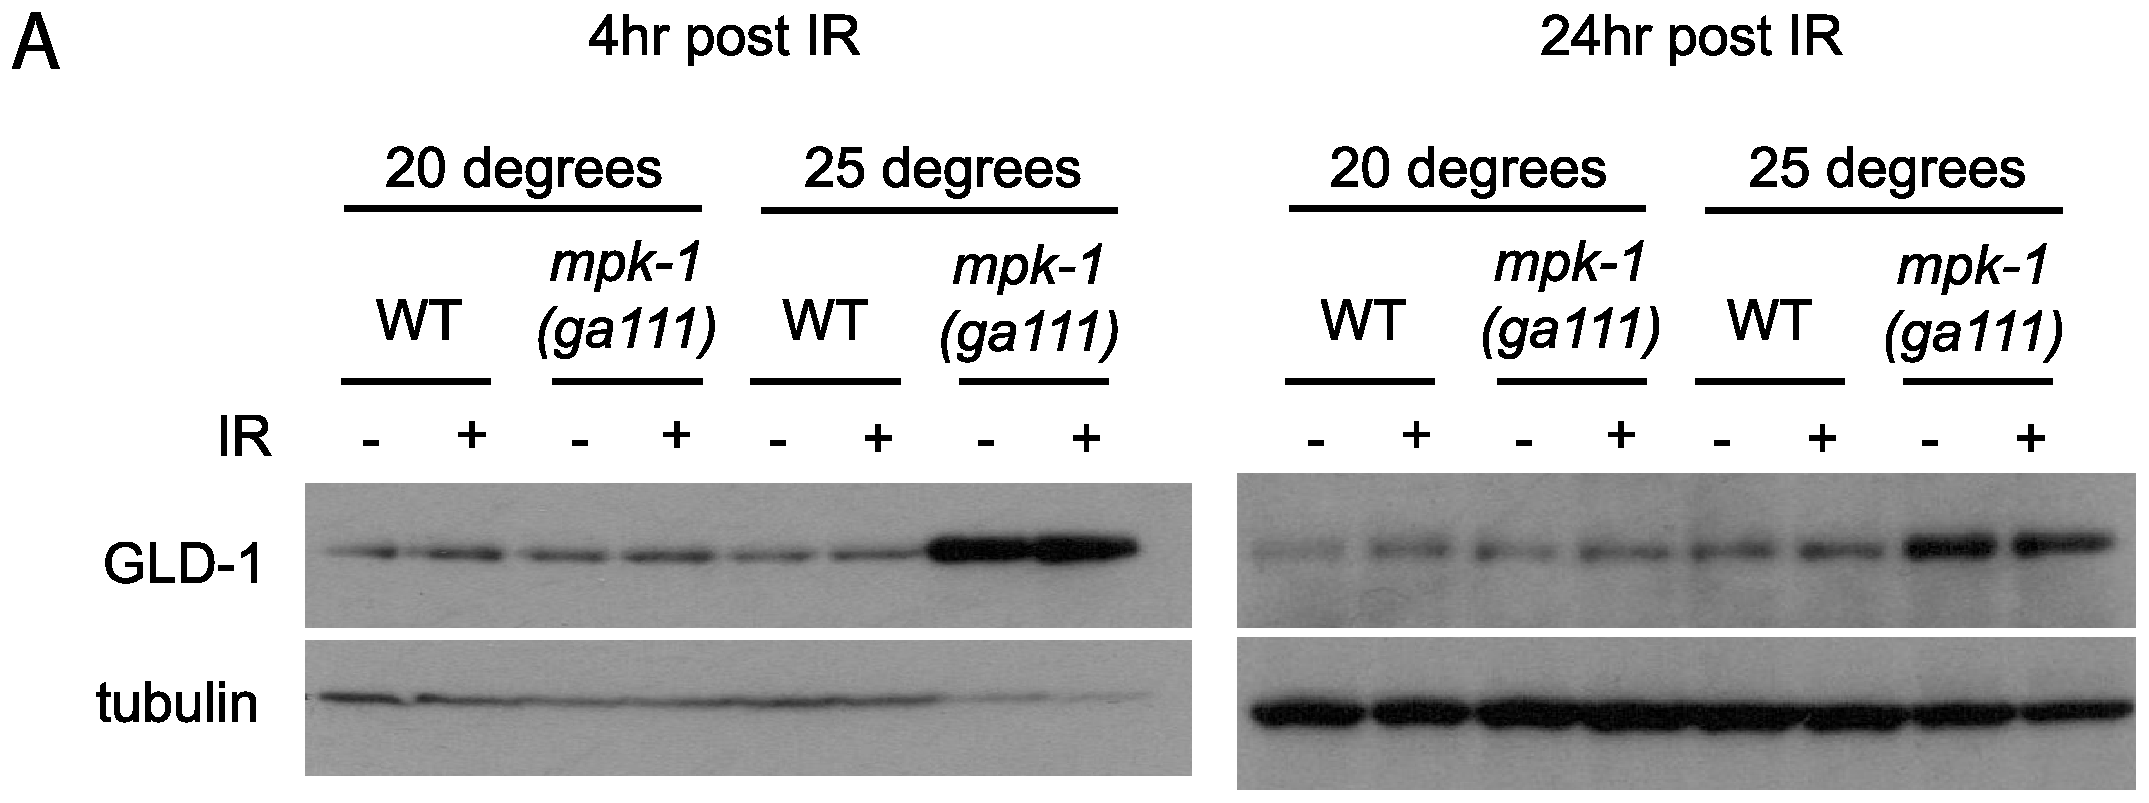 GLD-1 levels are affected by MPK-1 signaling.